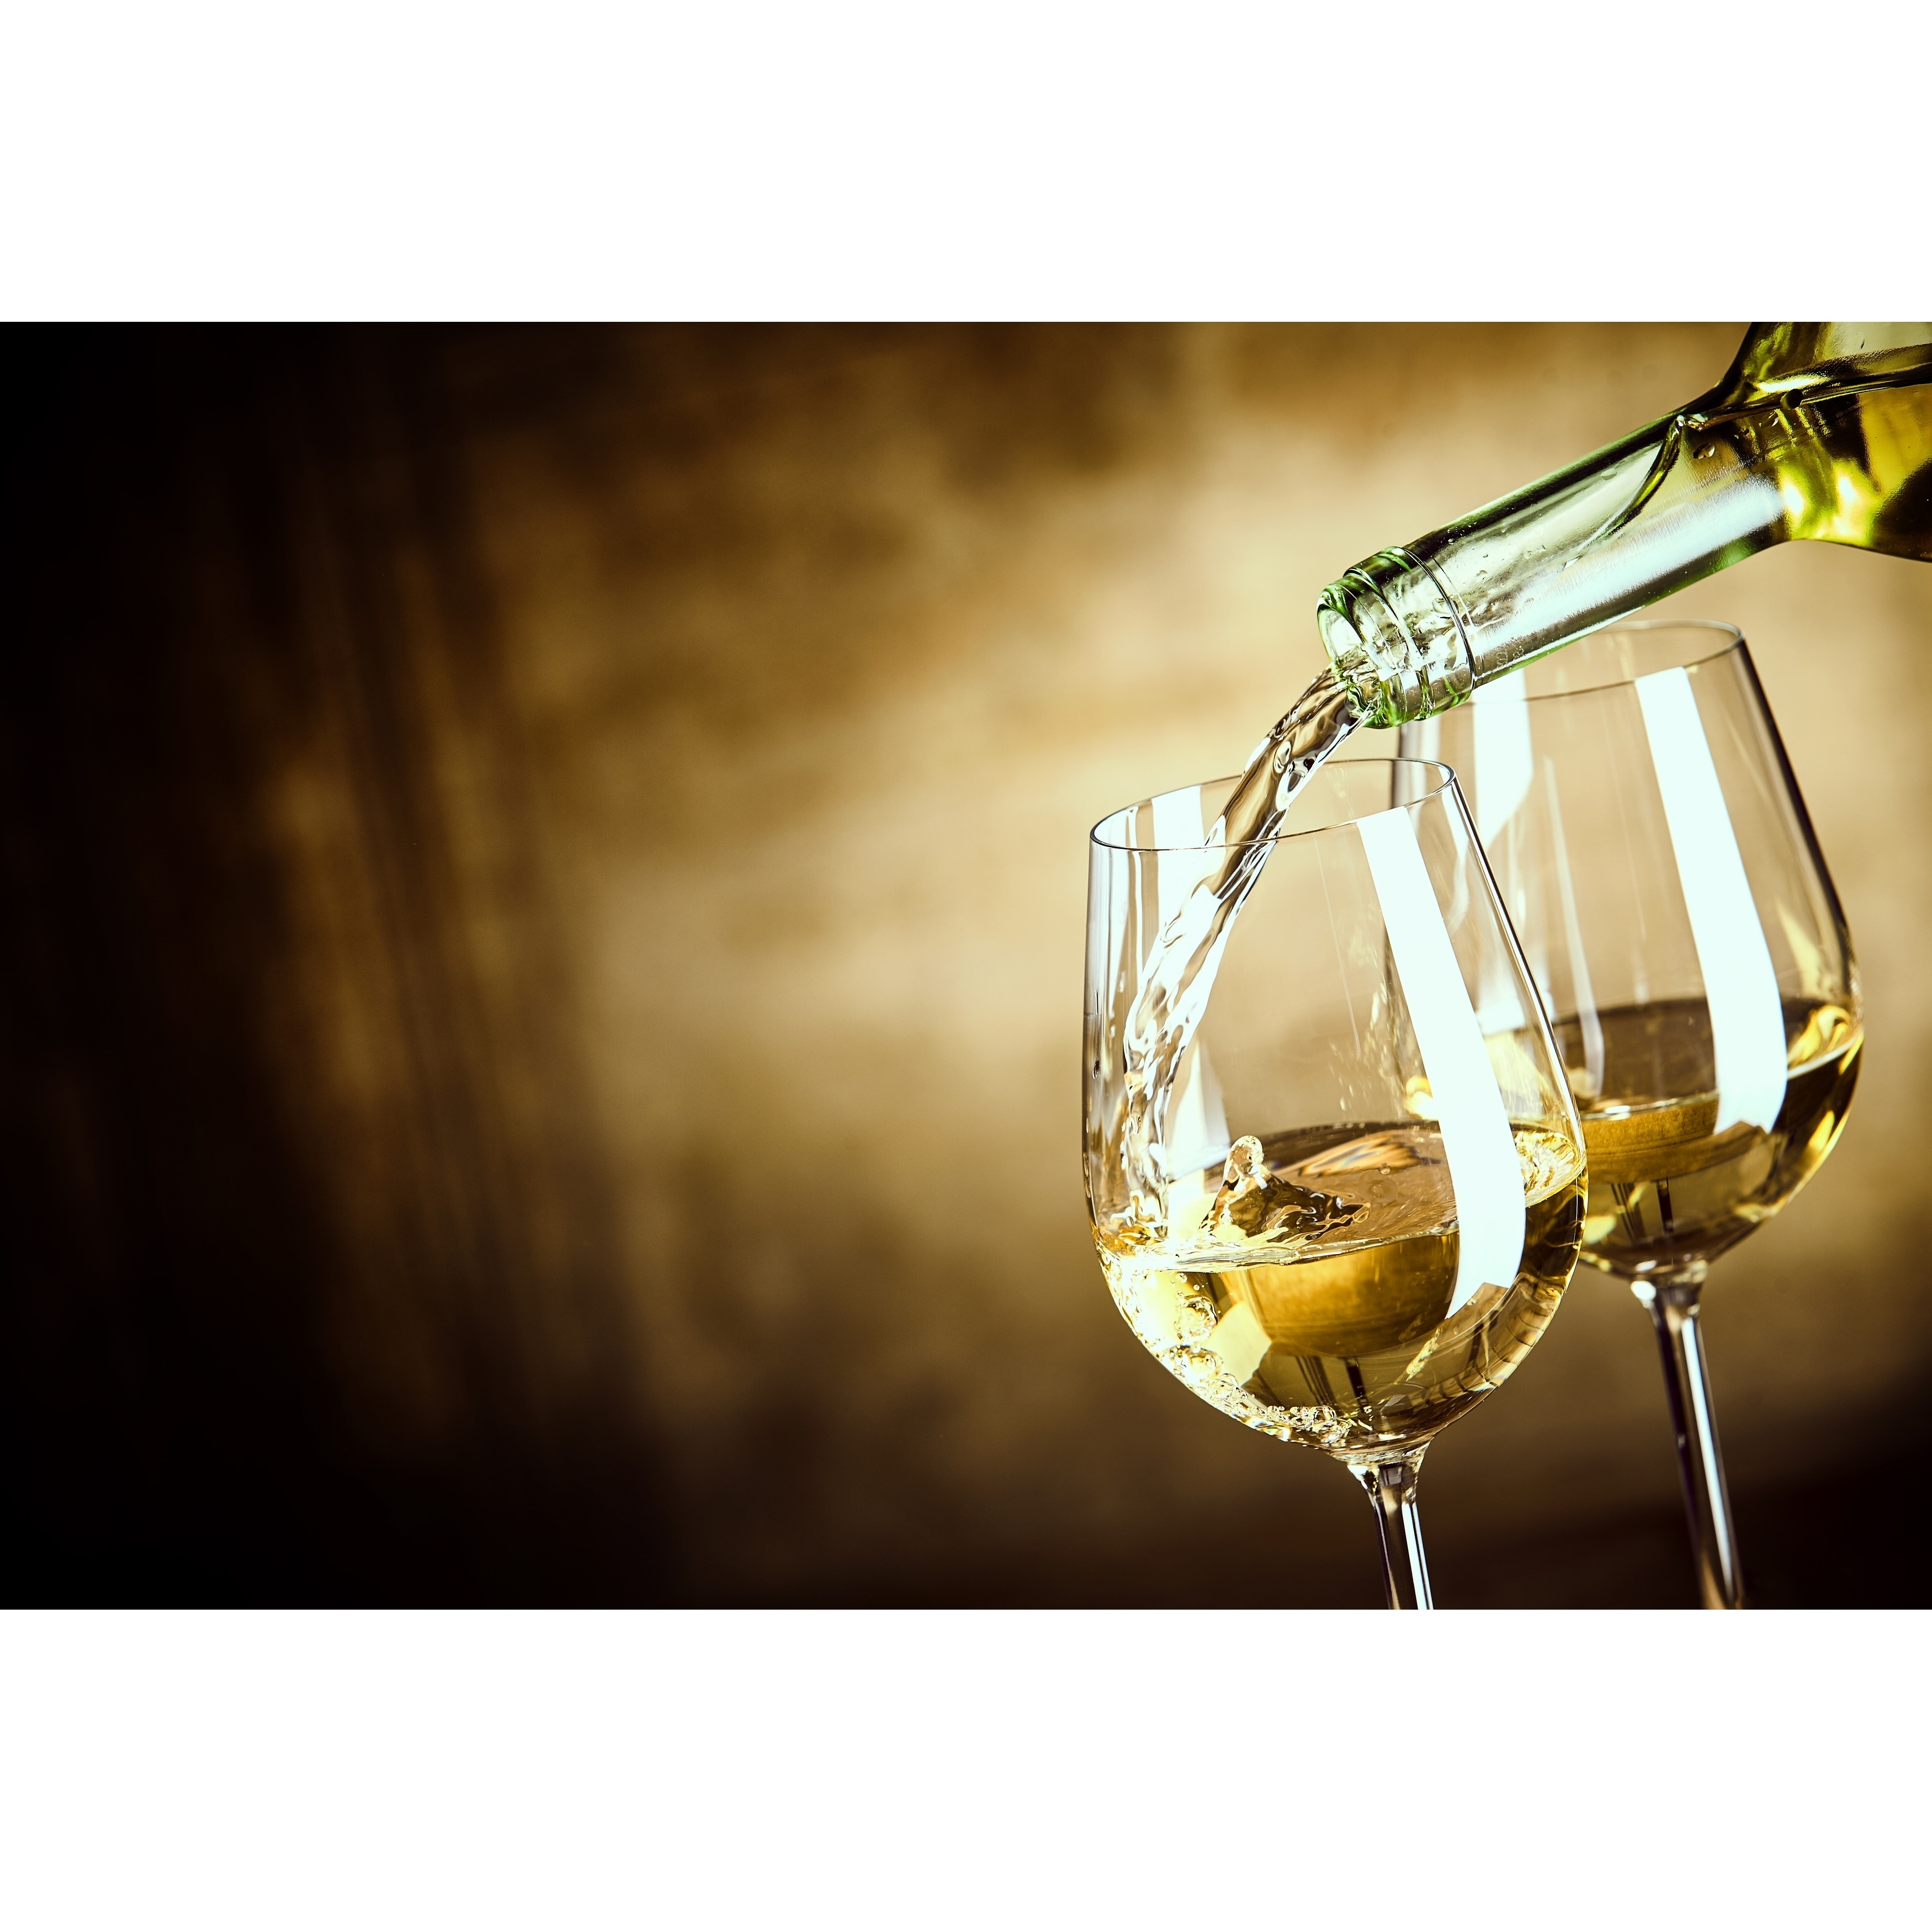 """Dainty Home White Wine Foam Placemat, 13""""x19"""", Set of 4"""